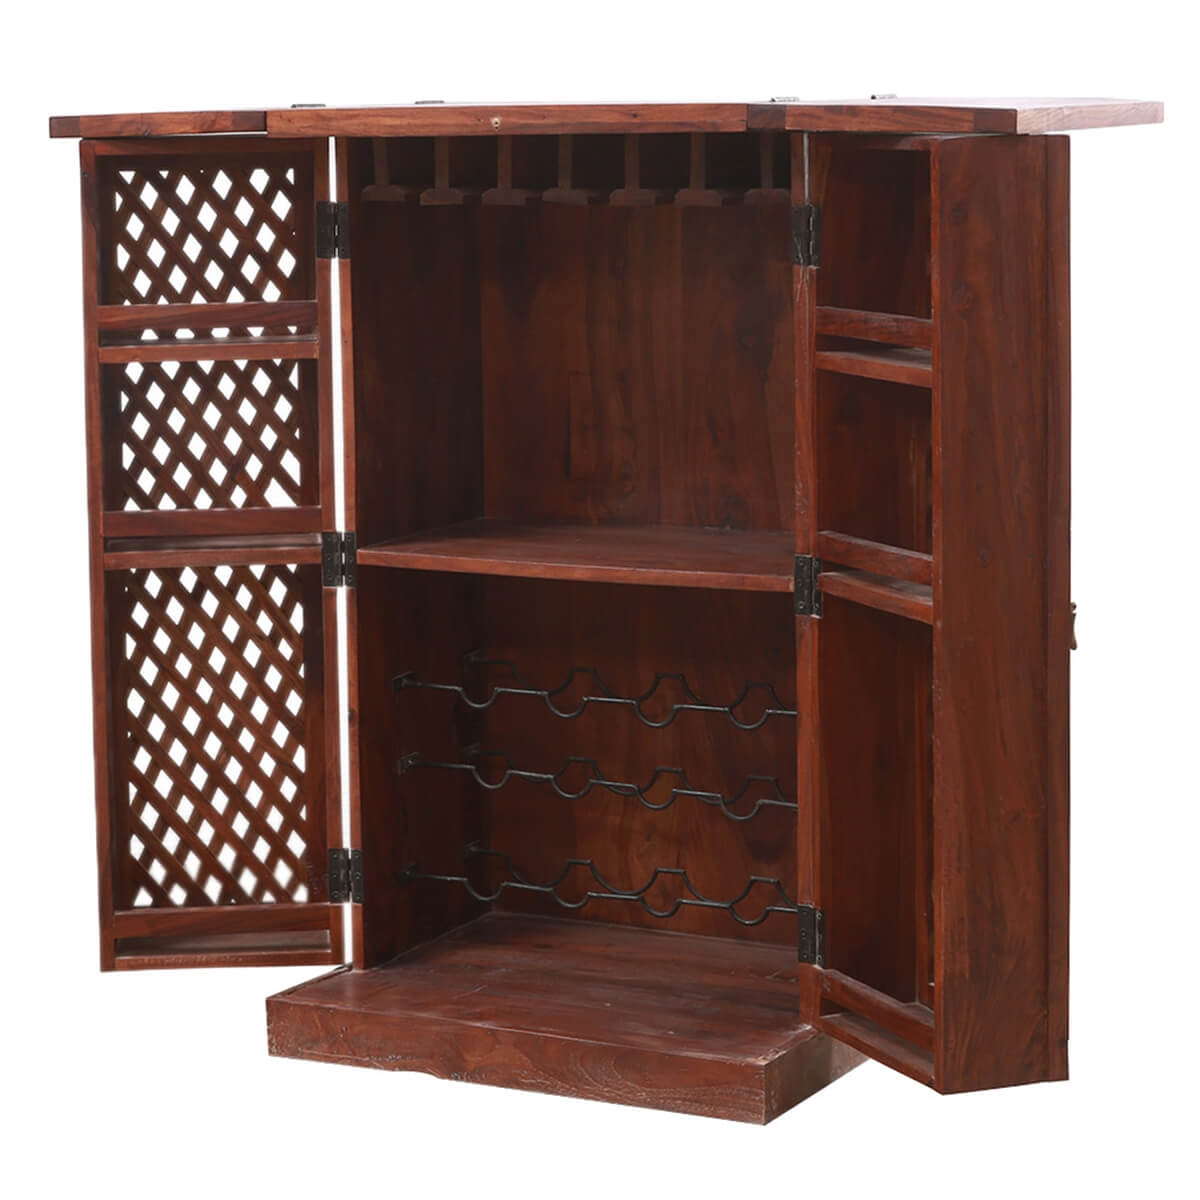 Barrie Expandable Flap-Top Bar Cabinet Armoire with Lattice-Doors